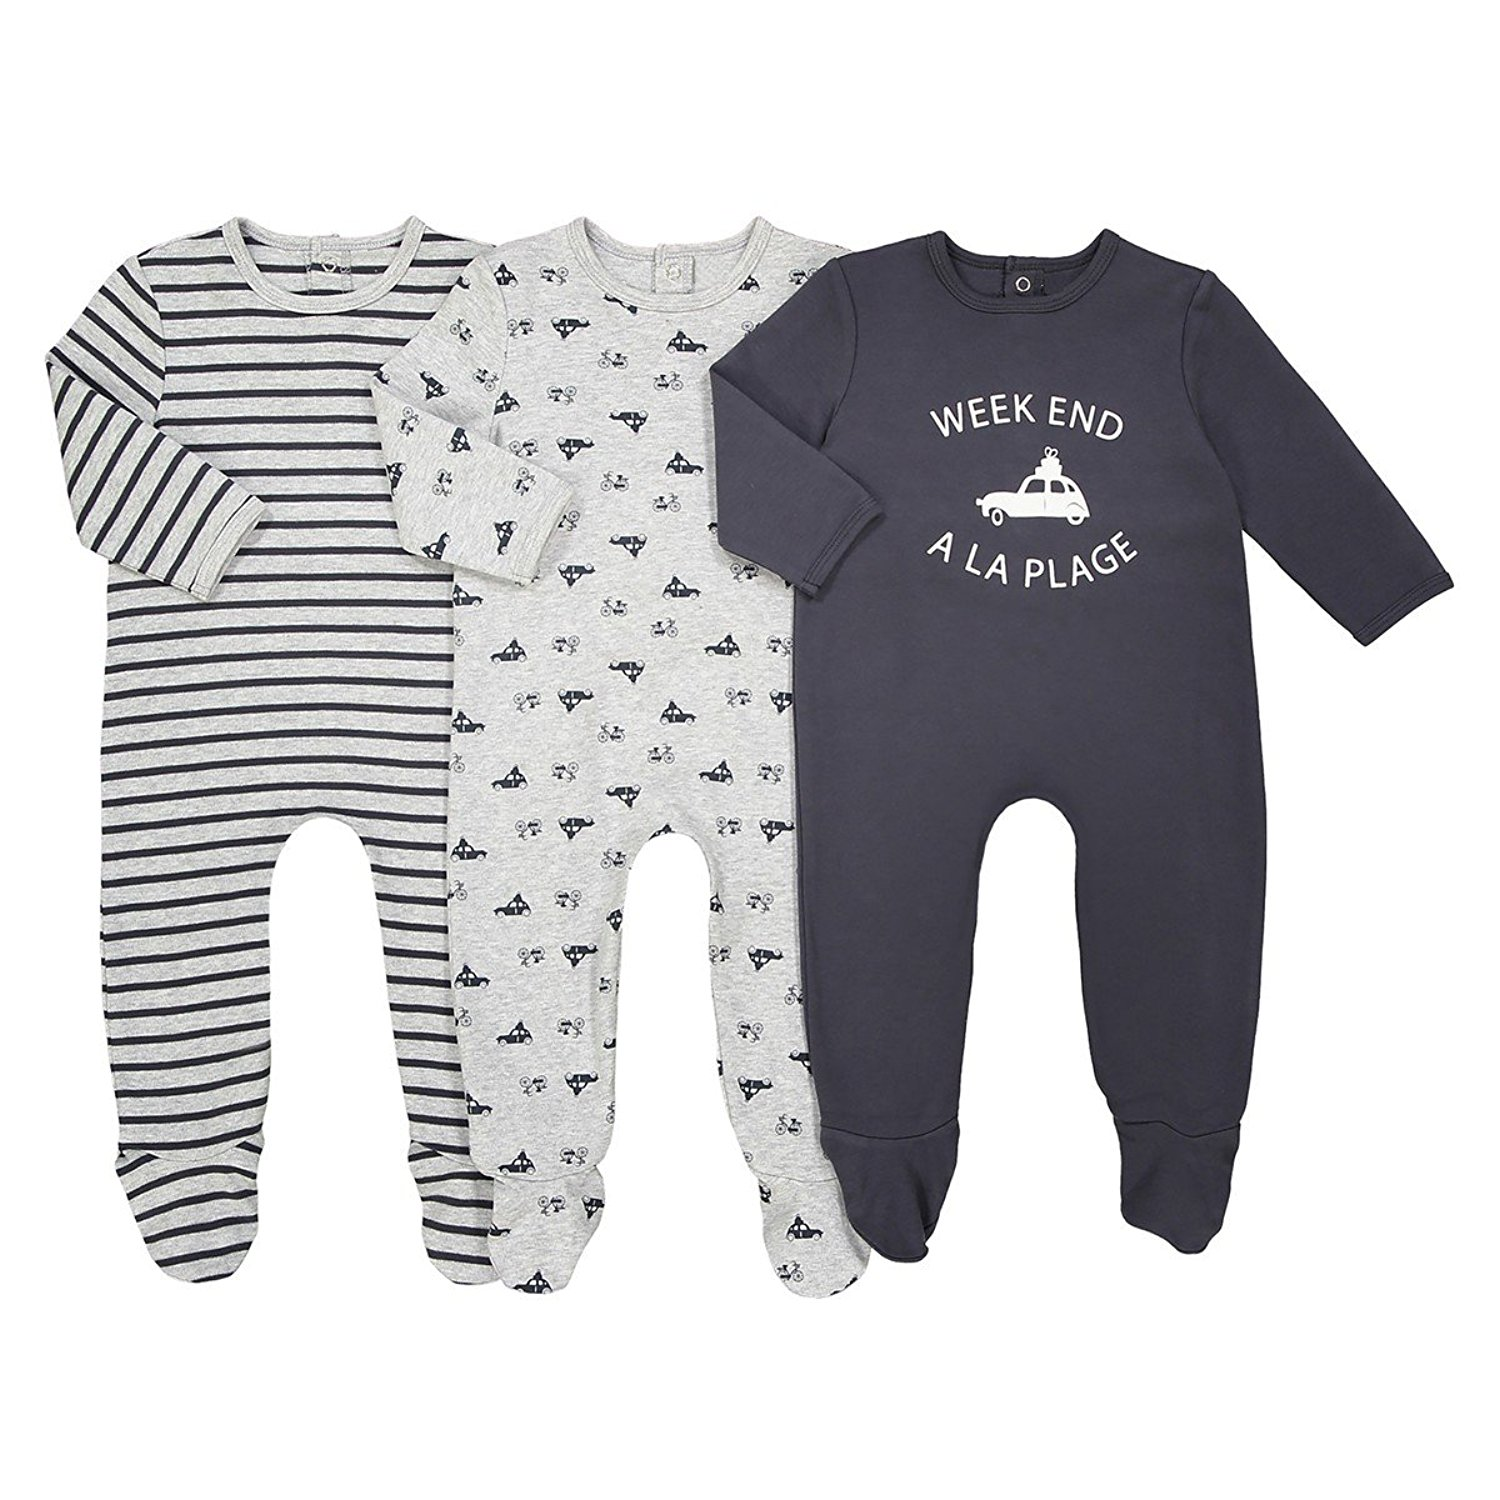 ca5532dc3 Get Quotations · La Redoute Collections Big Boys Pack of 3 Car Motif  Sleepsuits, Birth-3 Years